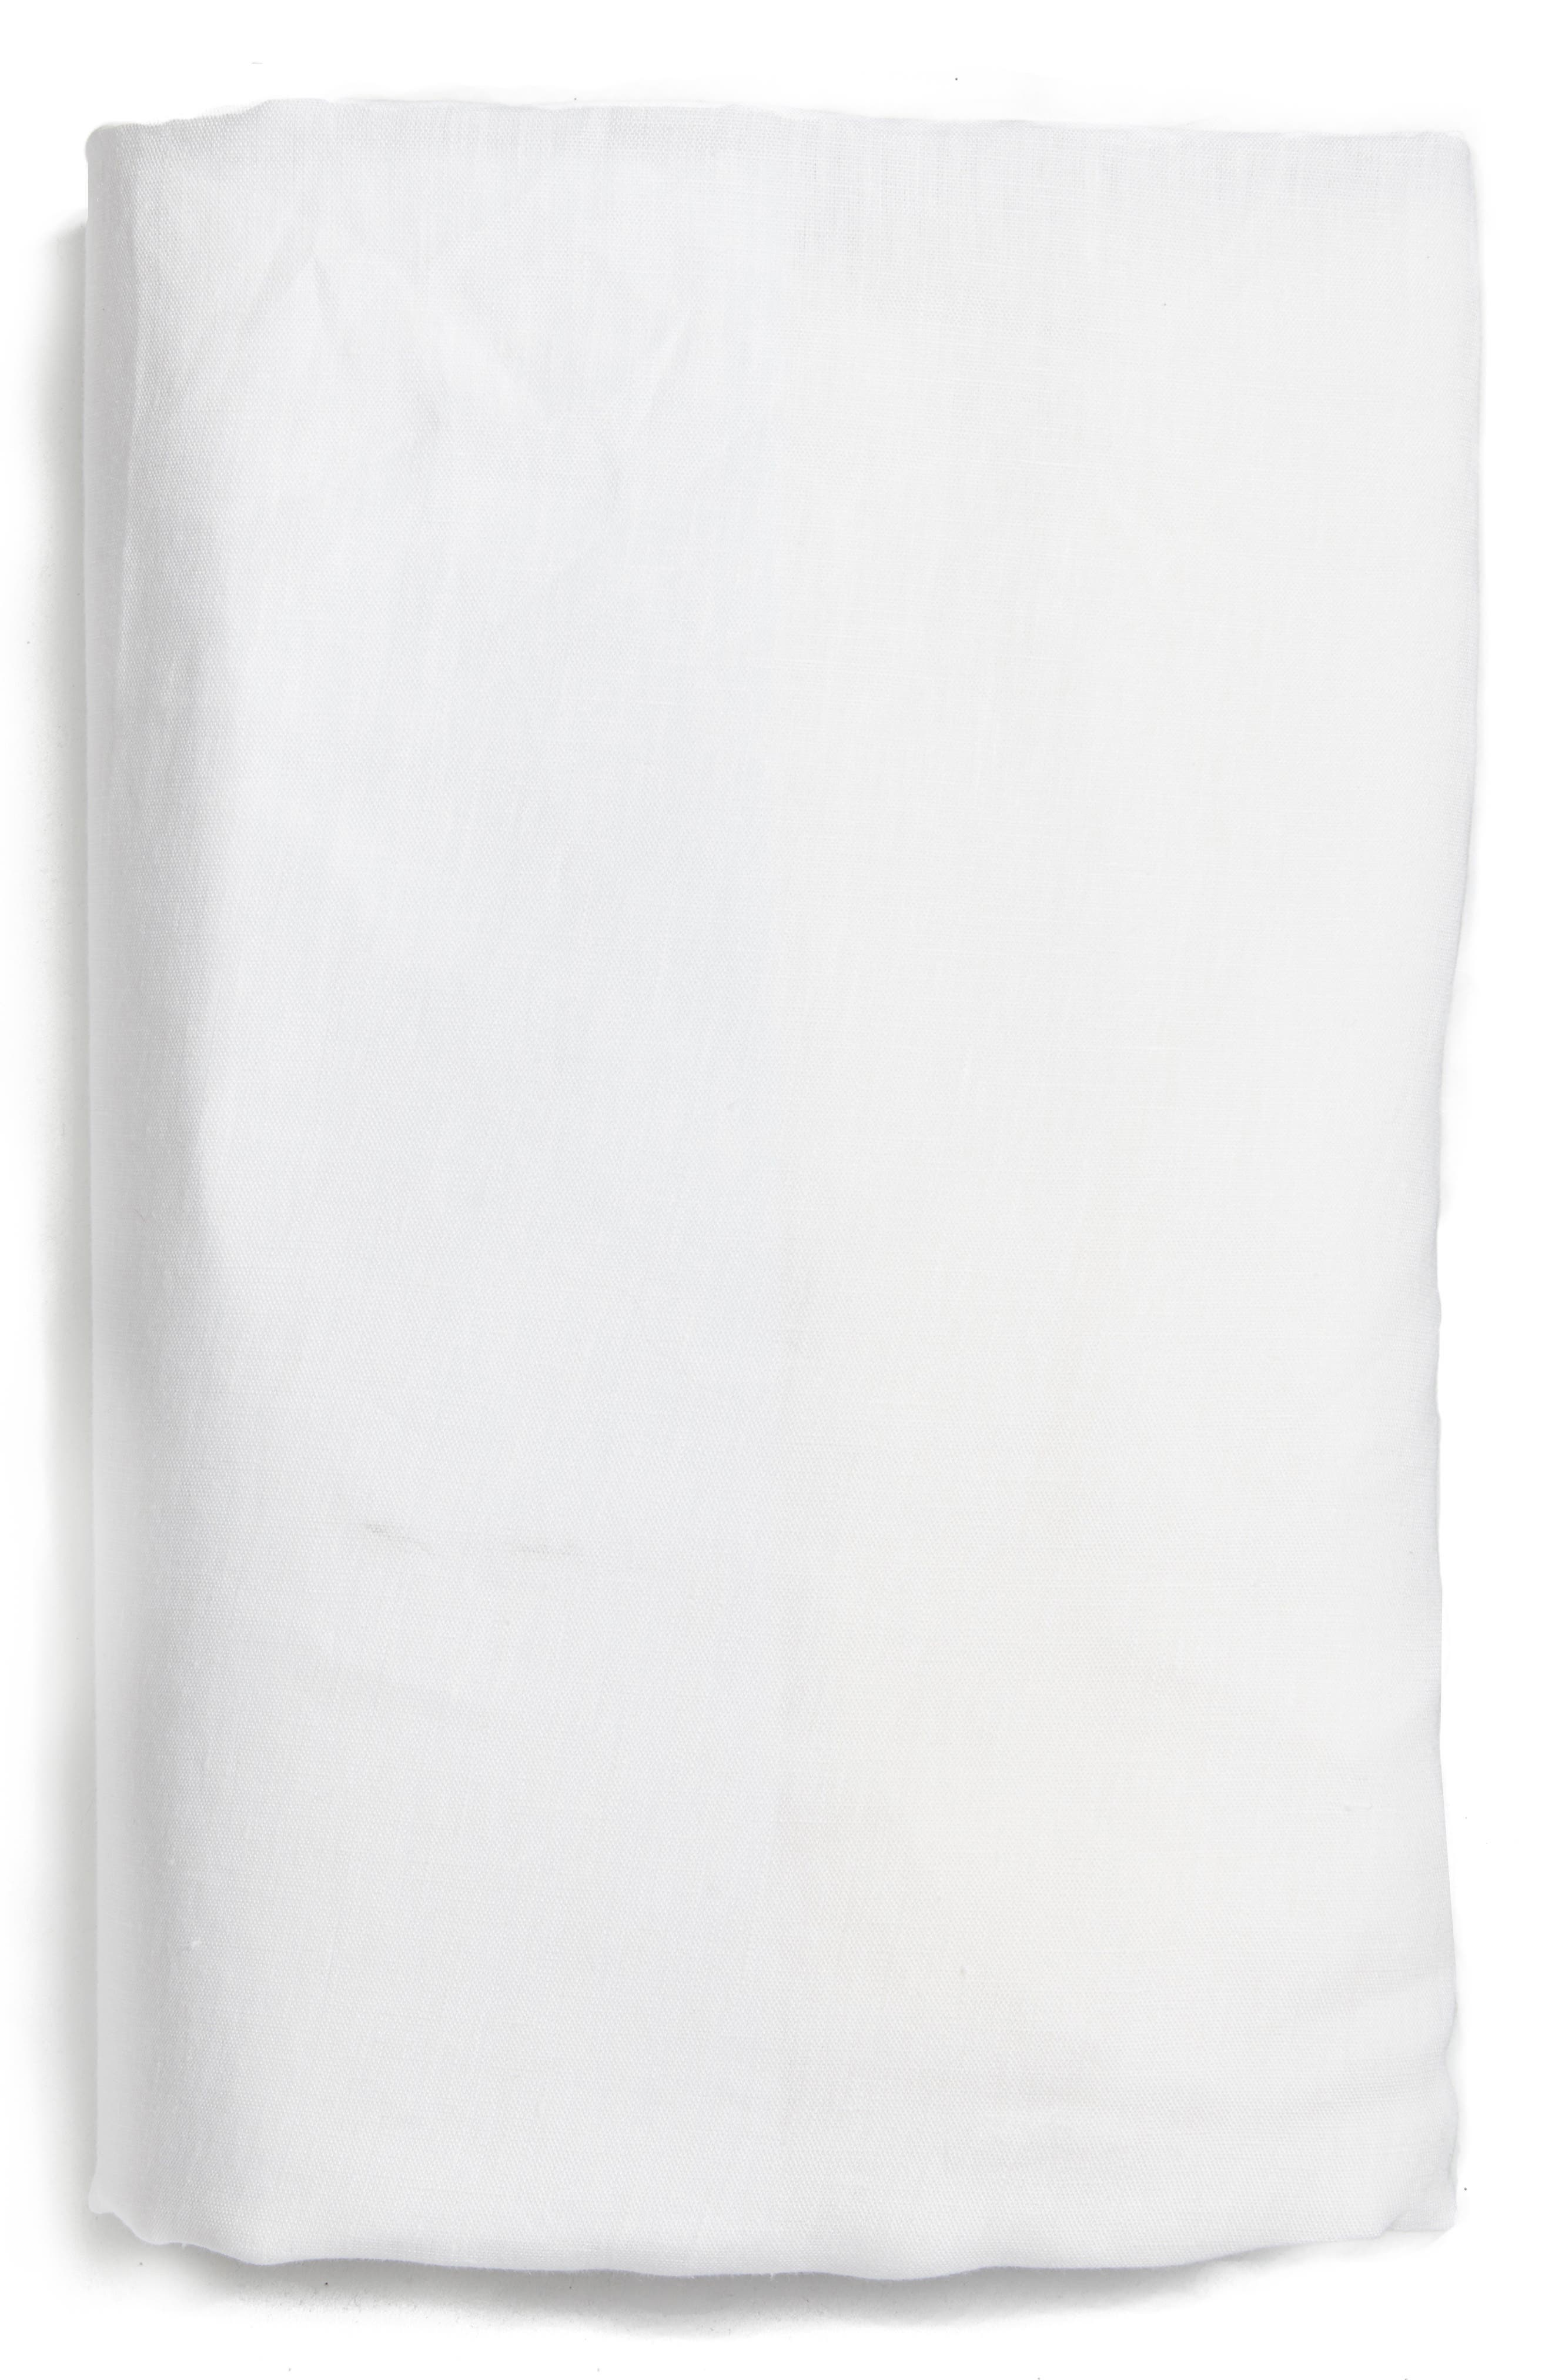 Solo Linen Fitted Sheet,                         Main,                         color, White